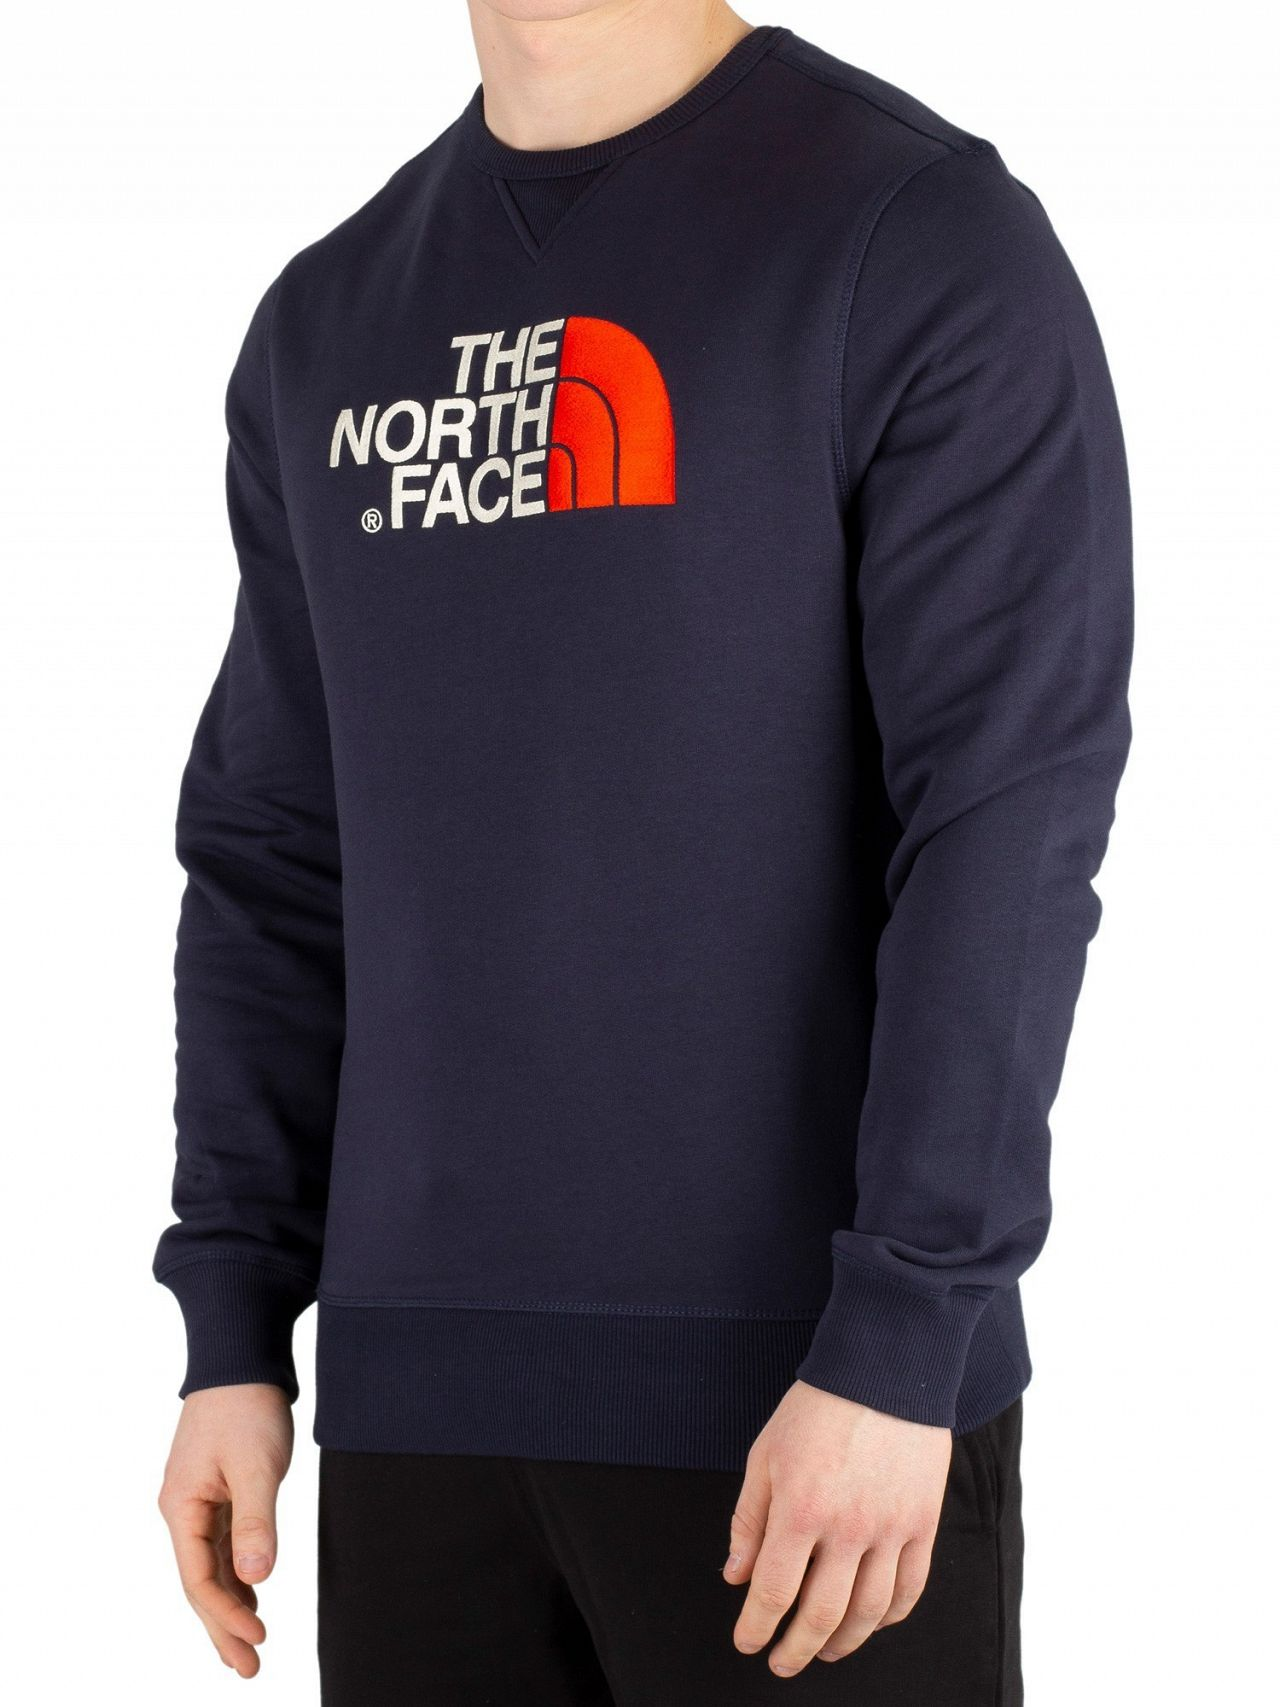 81e645104 The North Face Navy/Fiery Red Drew Peak Sweatshirt